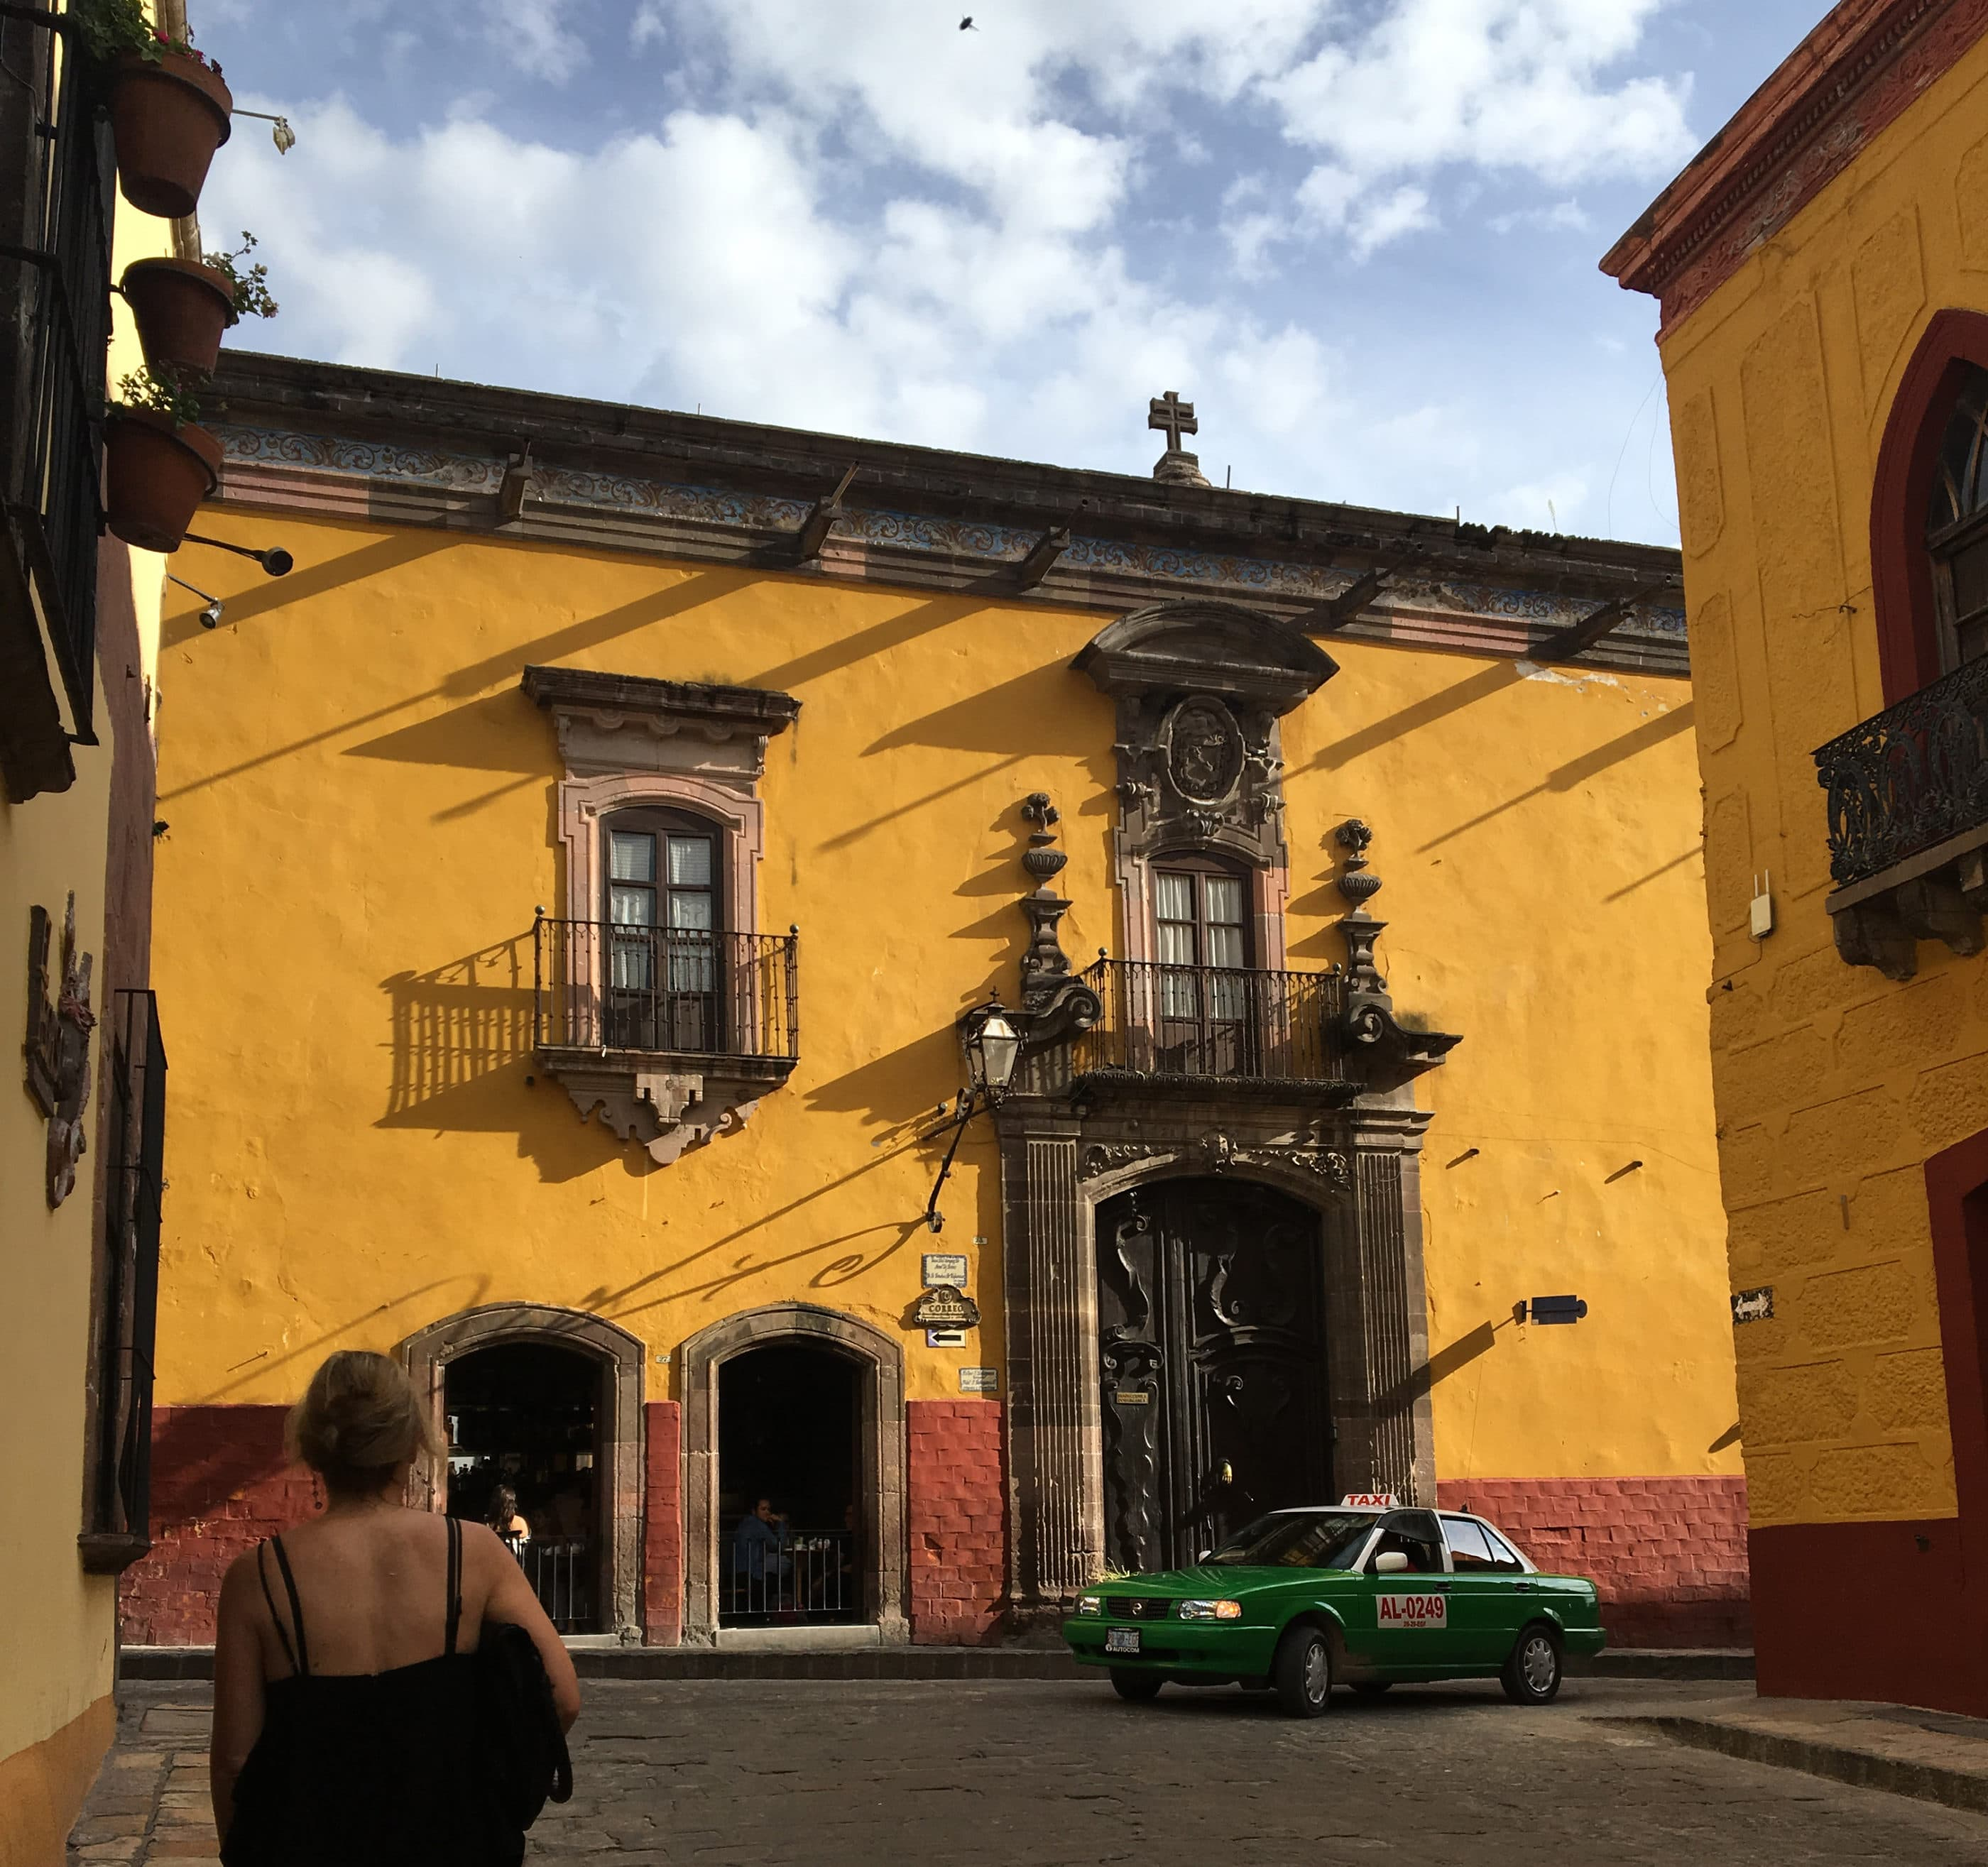 Lovely-Yellow-Building-Colonial-Architecture-San-Miguel-Mexico